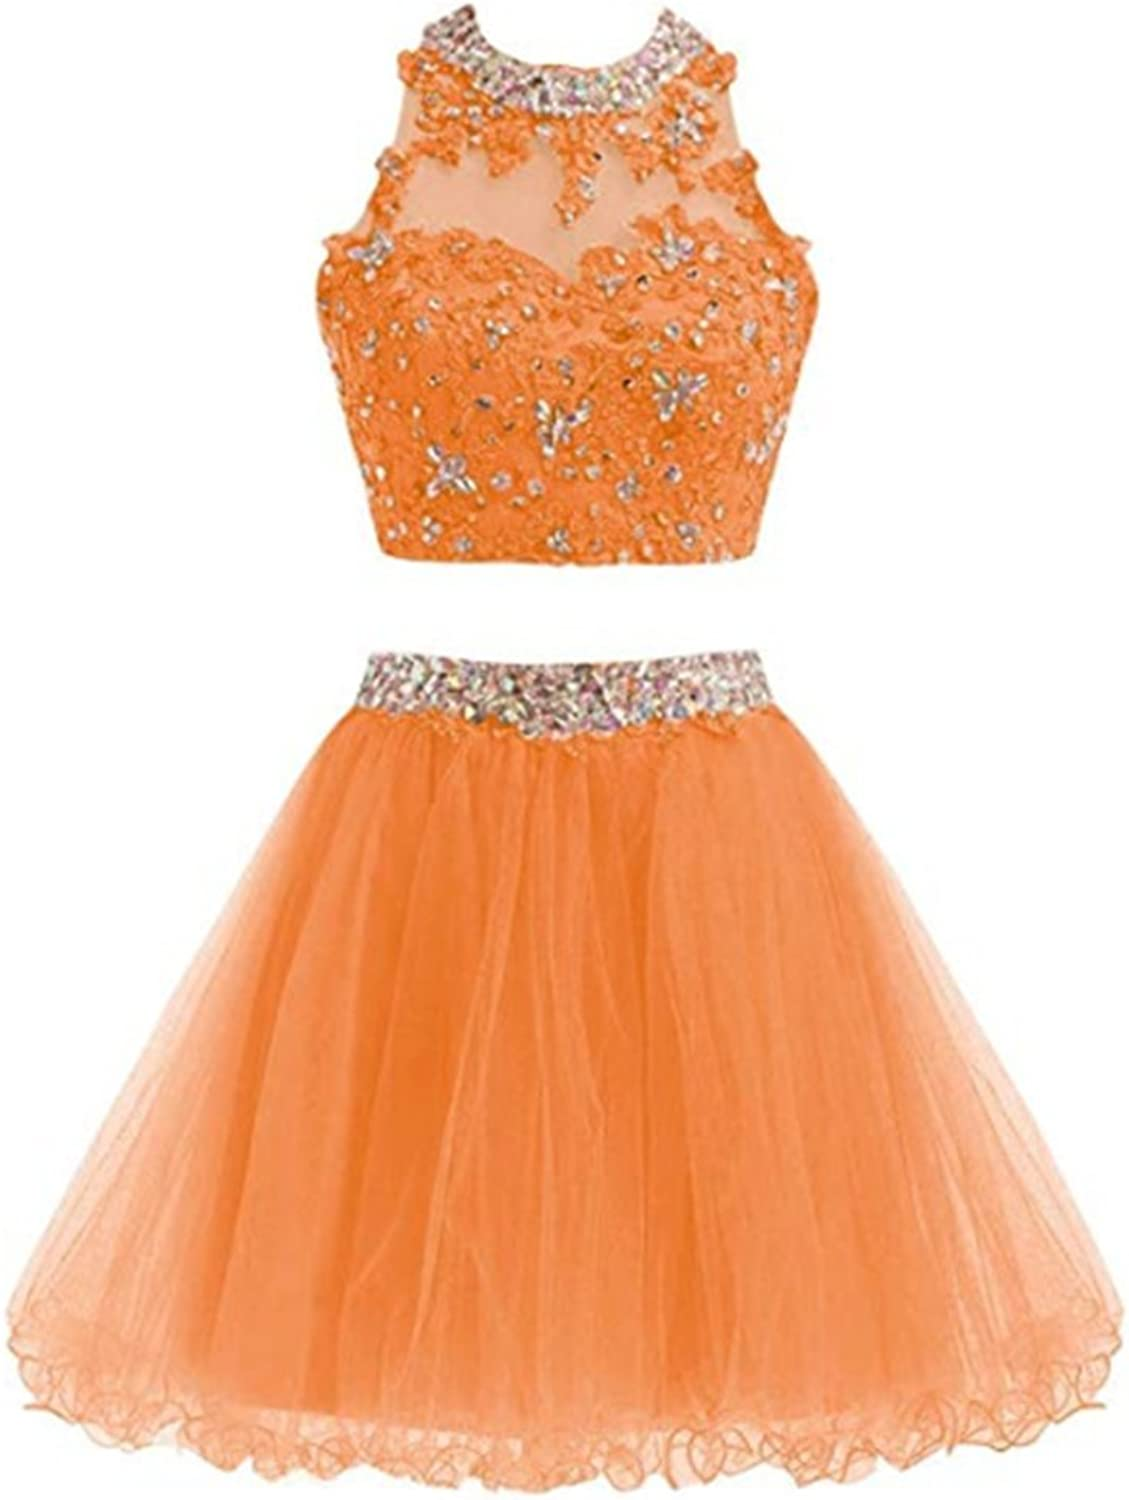 FWVR Women's 2 Piece Homecoming Dresses Beaded Short Prom Party Gowns Tulle Lace